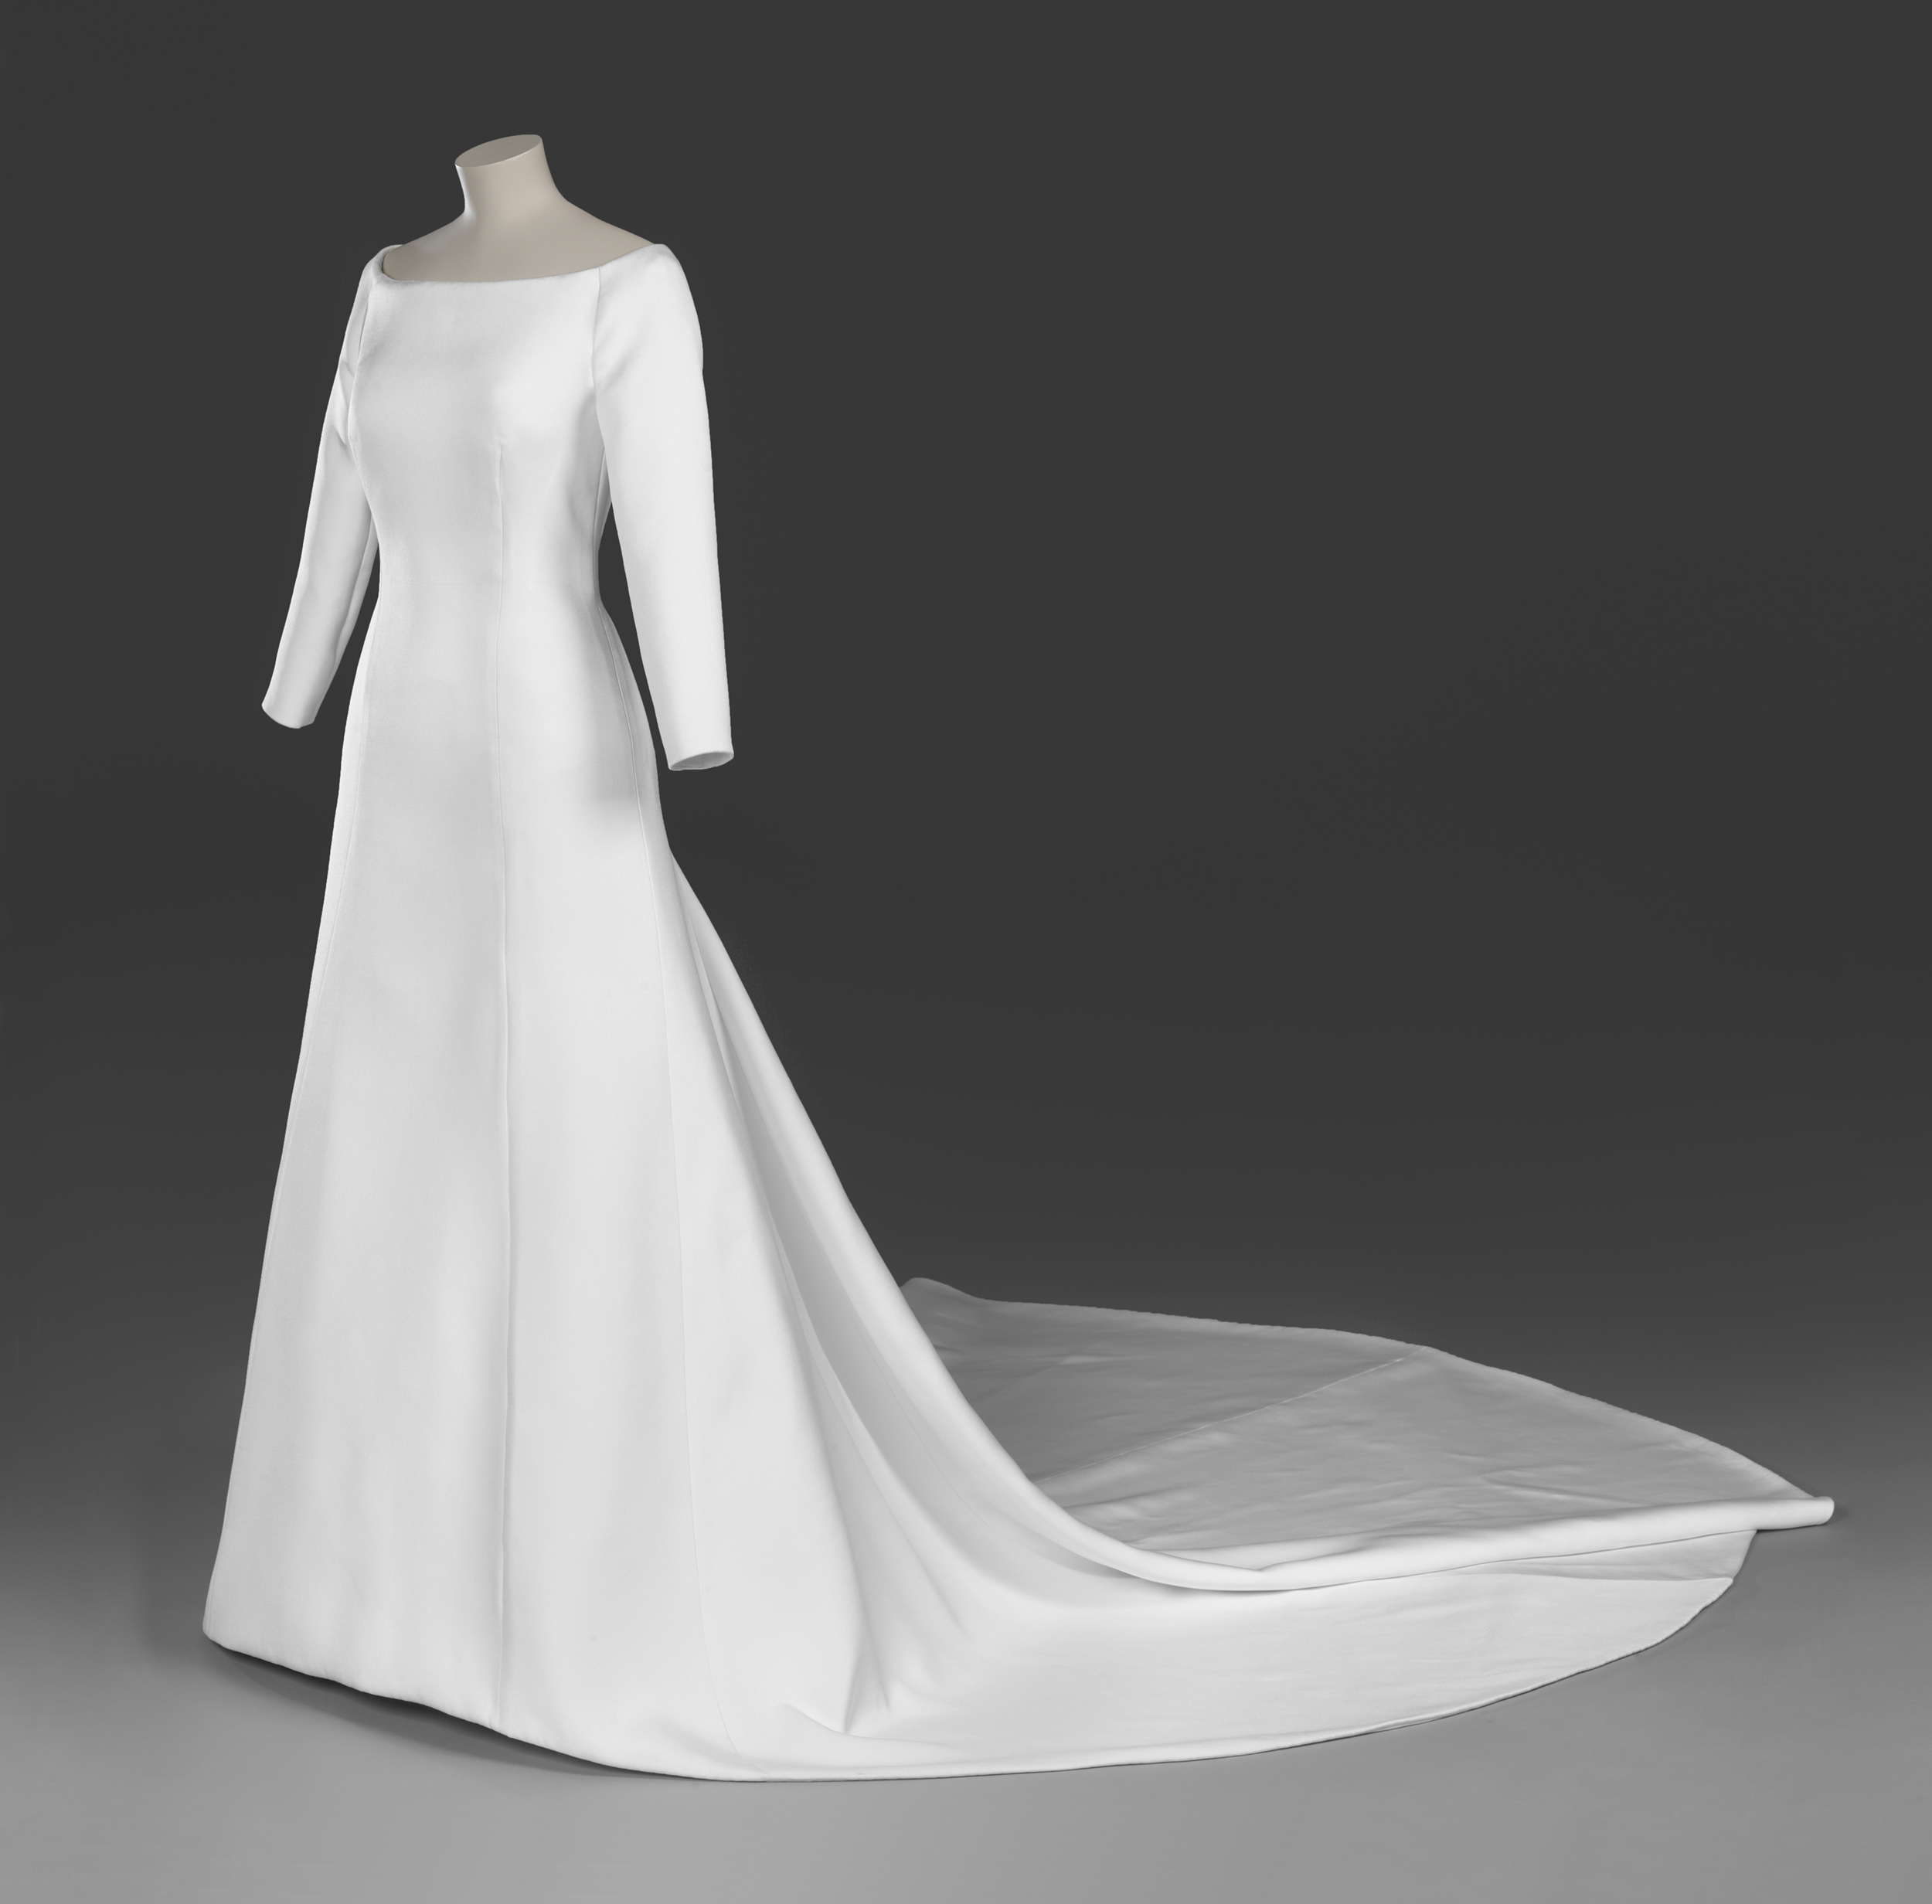 The Wedding Dress of The Duchess of Sussex